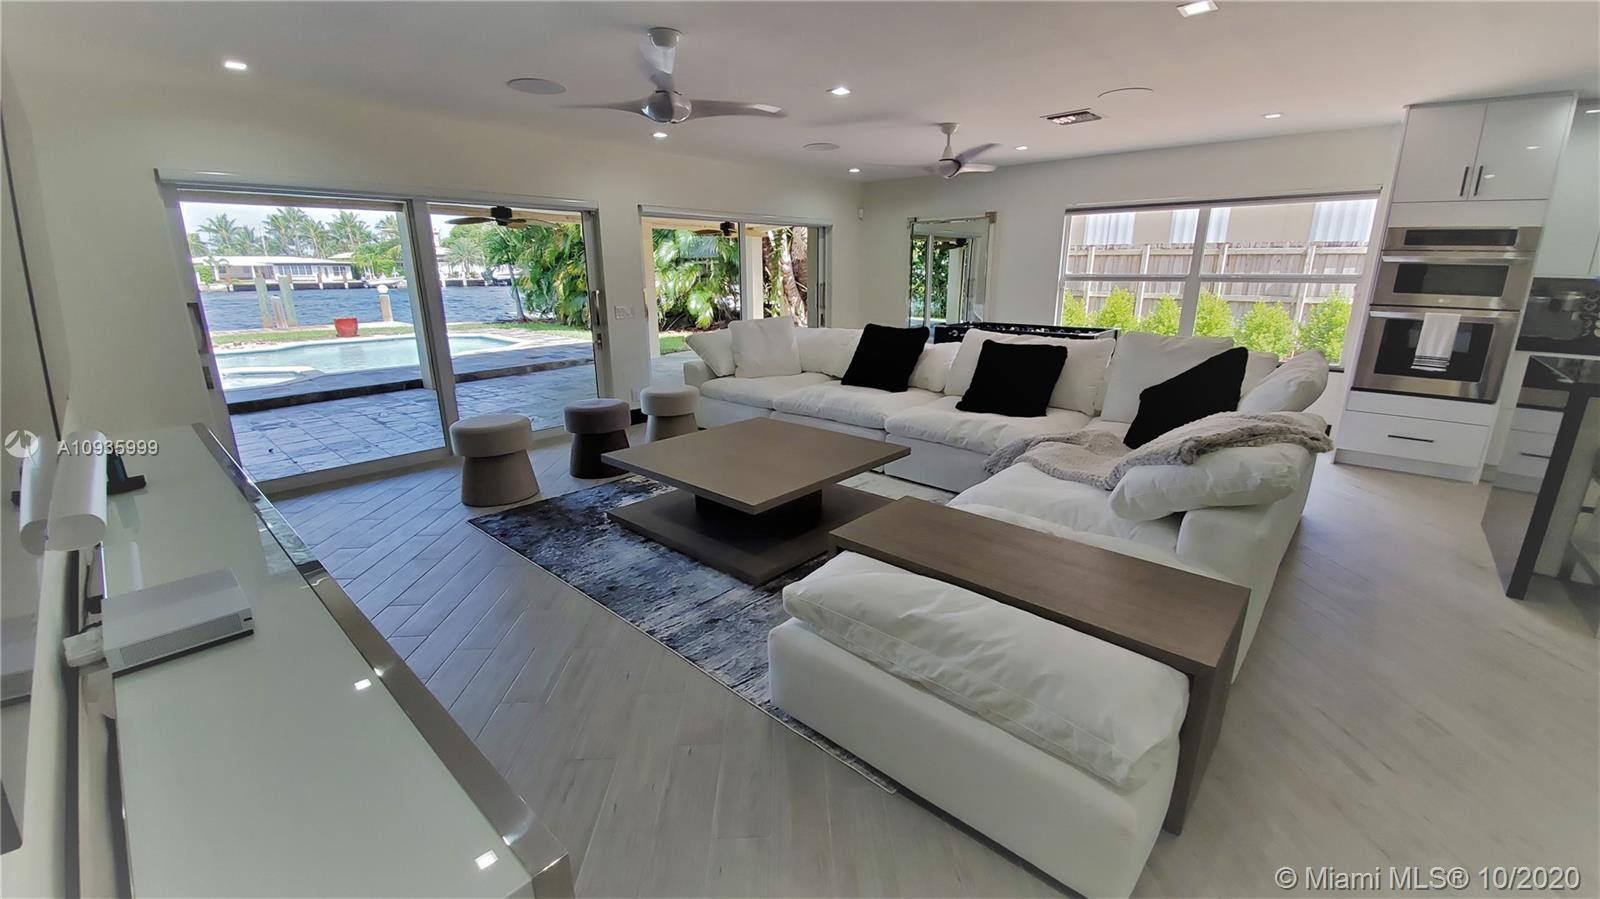 stunning modern intracoastal home completely remodeled to perfection. a true boaters delight, just t